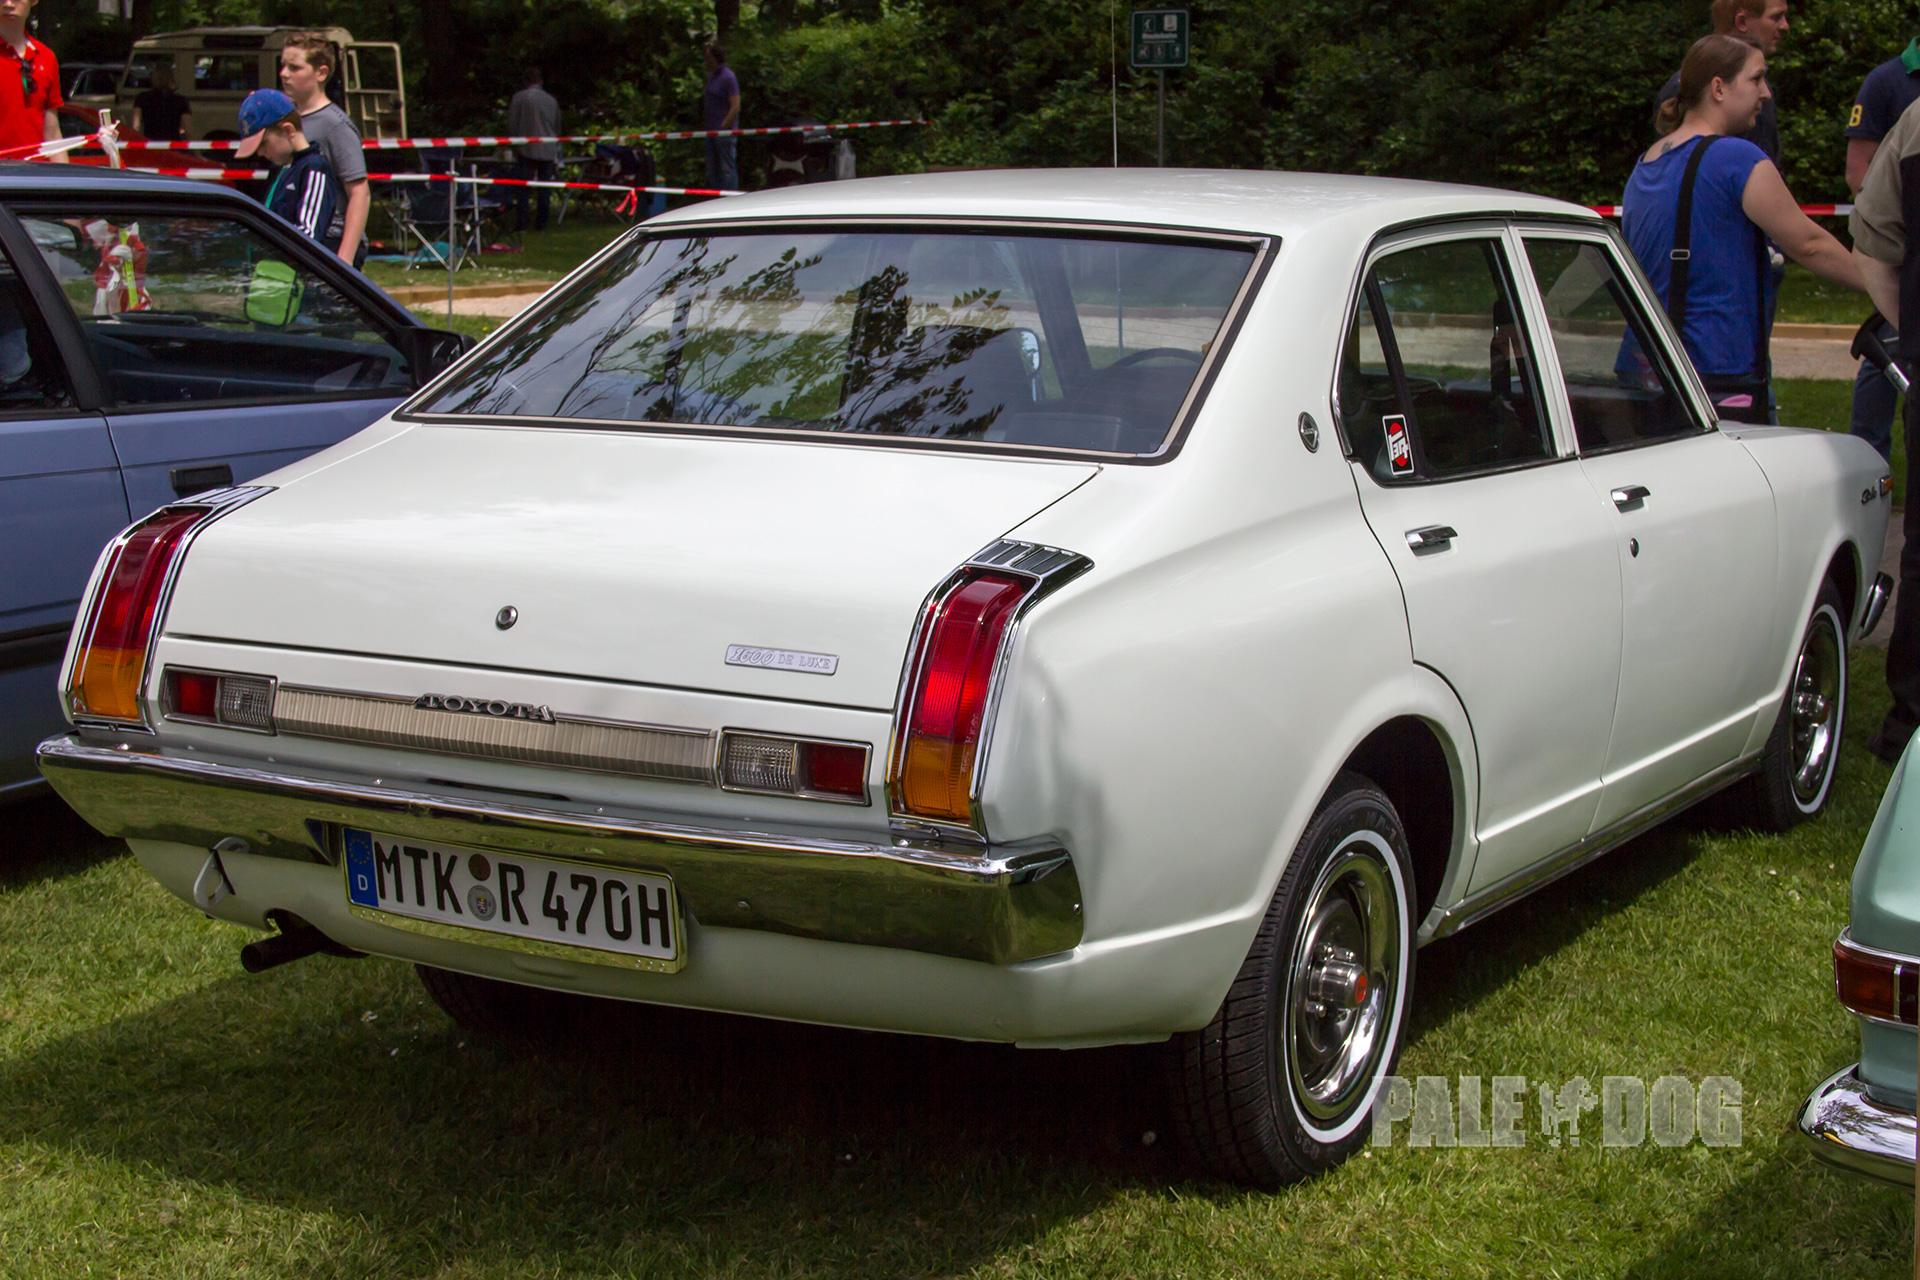 1974 toyota carina images galleries with a bite. Black Bedroom Furniture Sets. Home Design Ideas